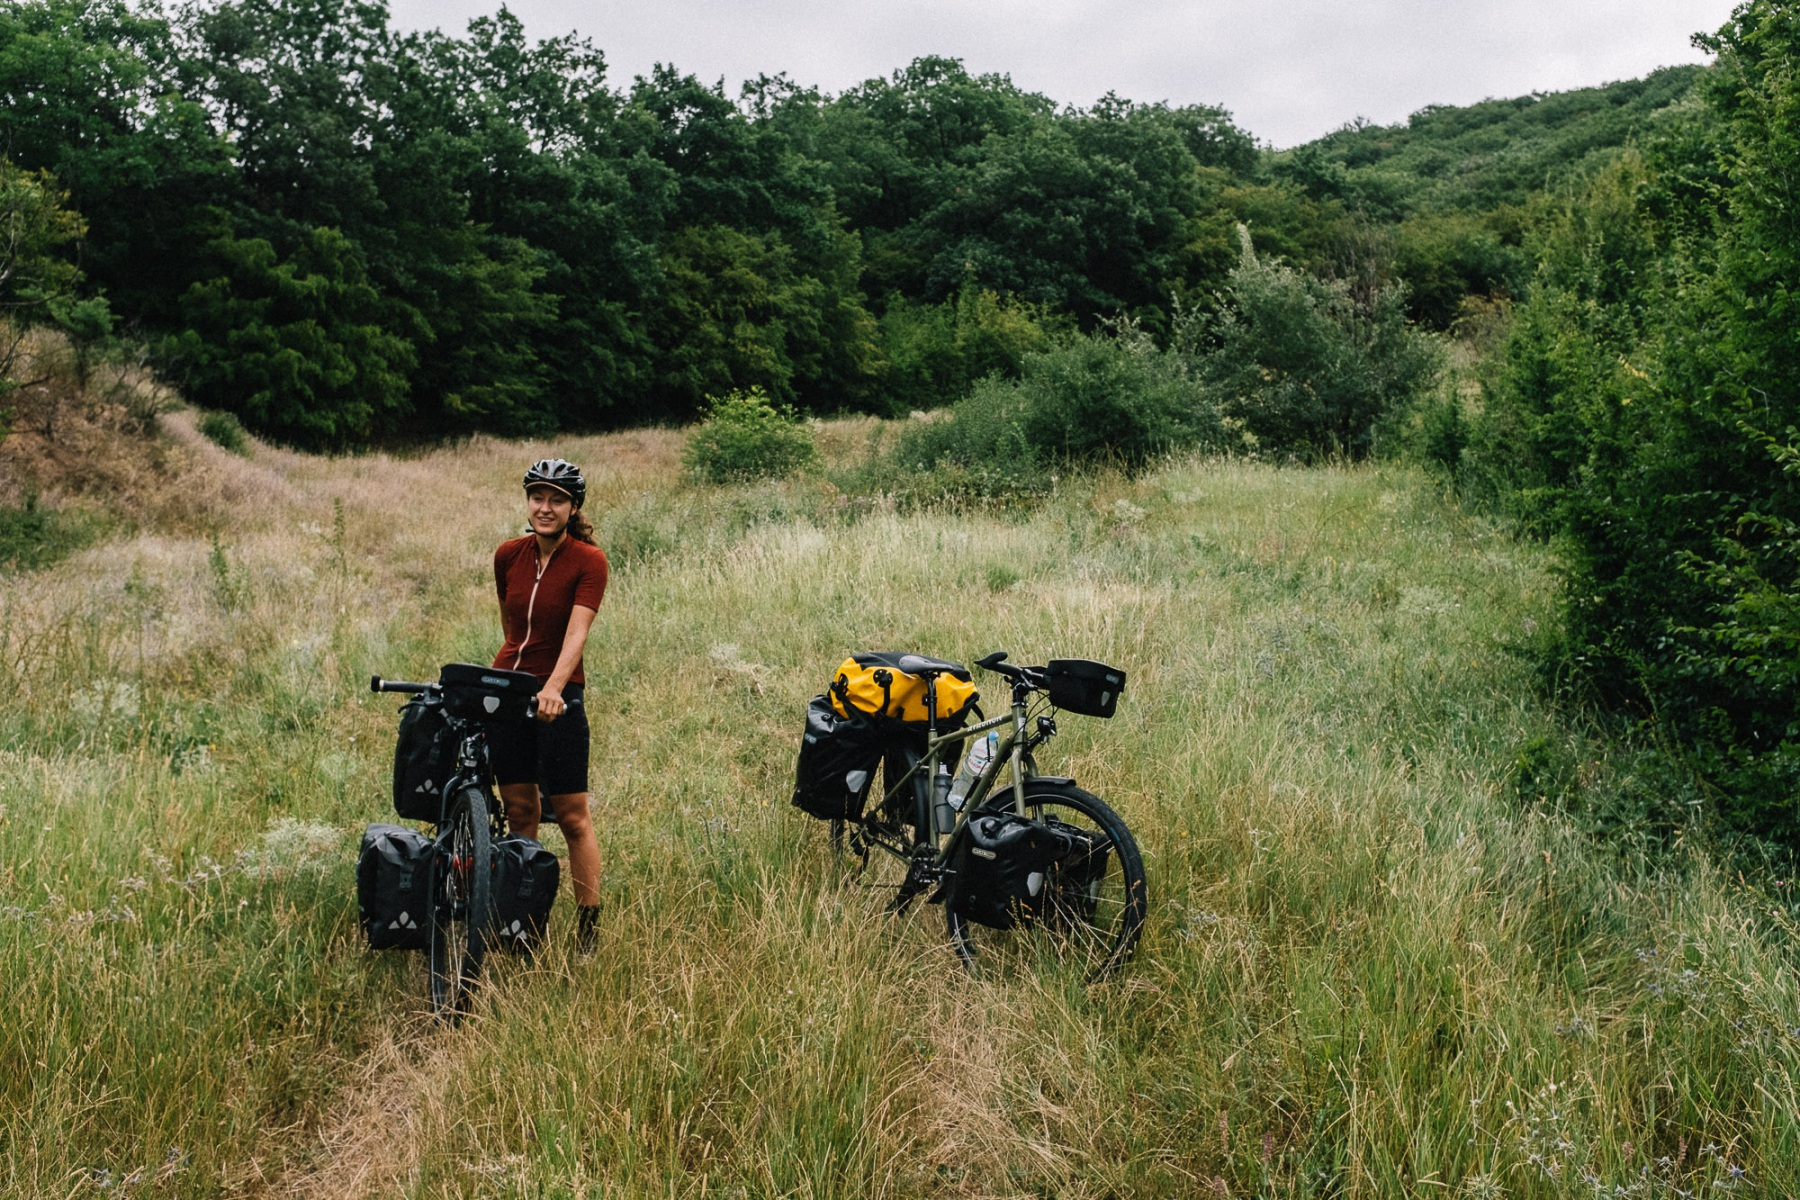 Taking a break on the Bikepacking.com route in Georgia